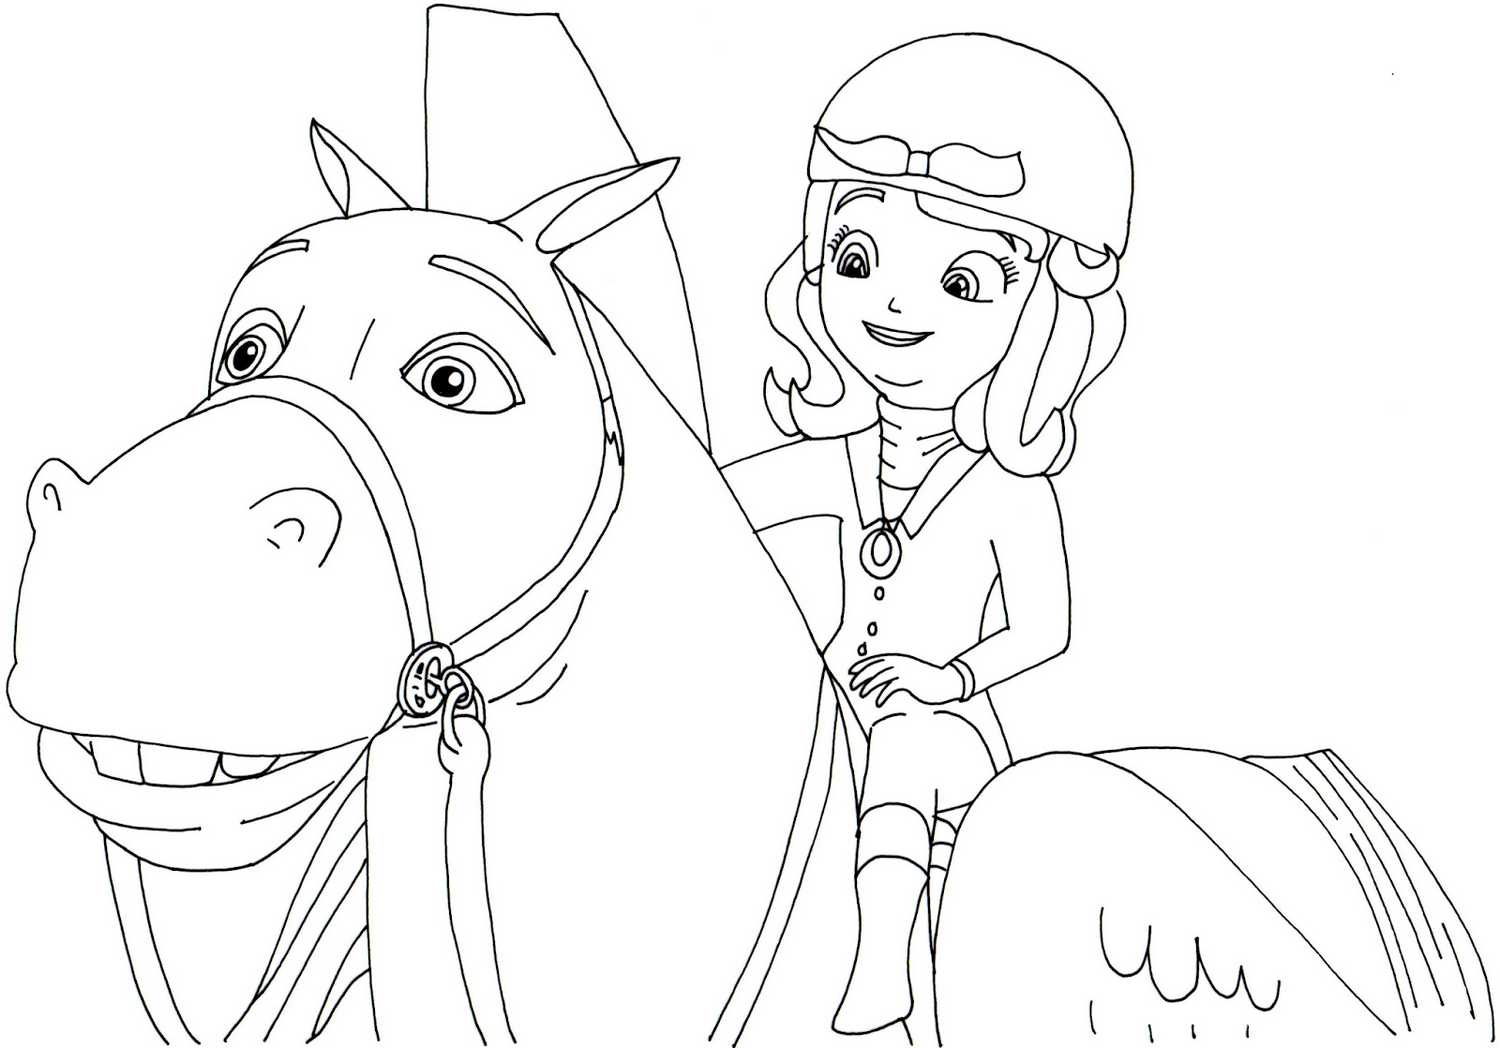 sofia-the-first-and-horse-coloring-book